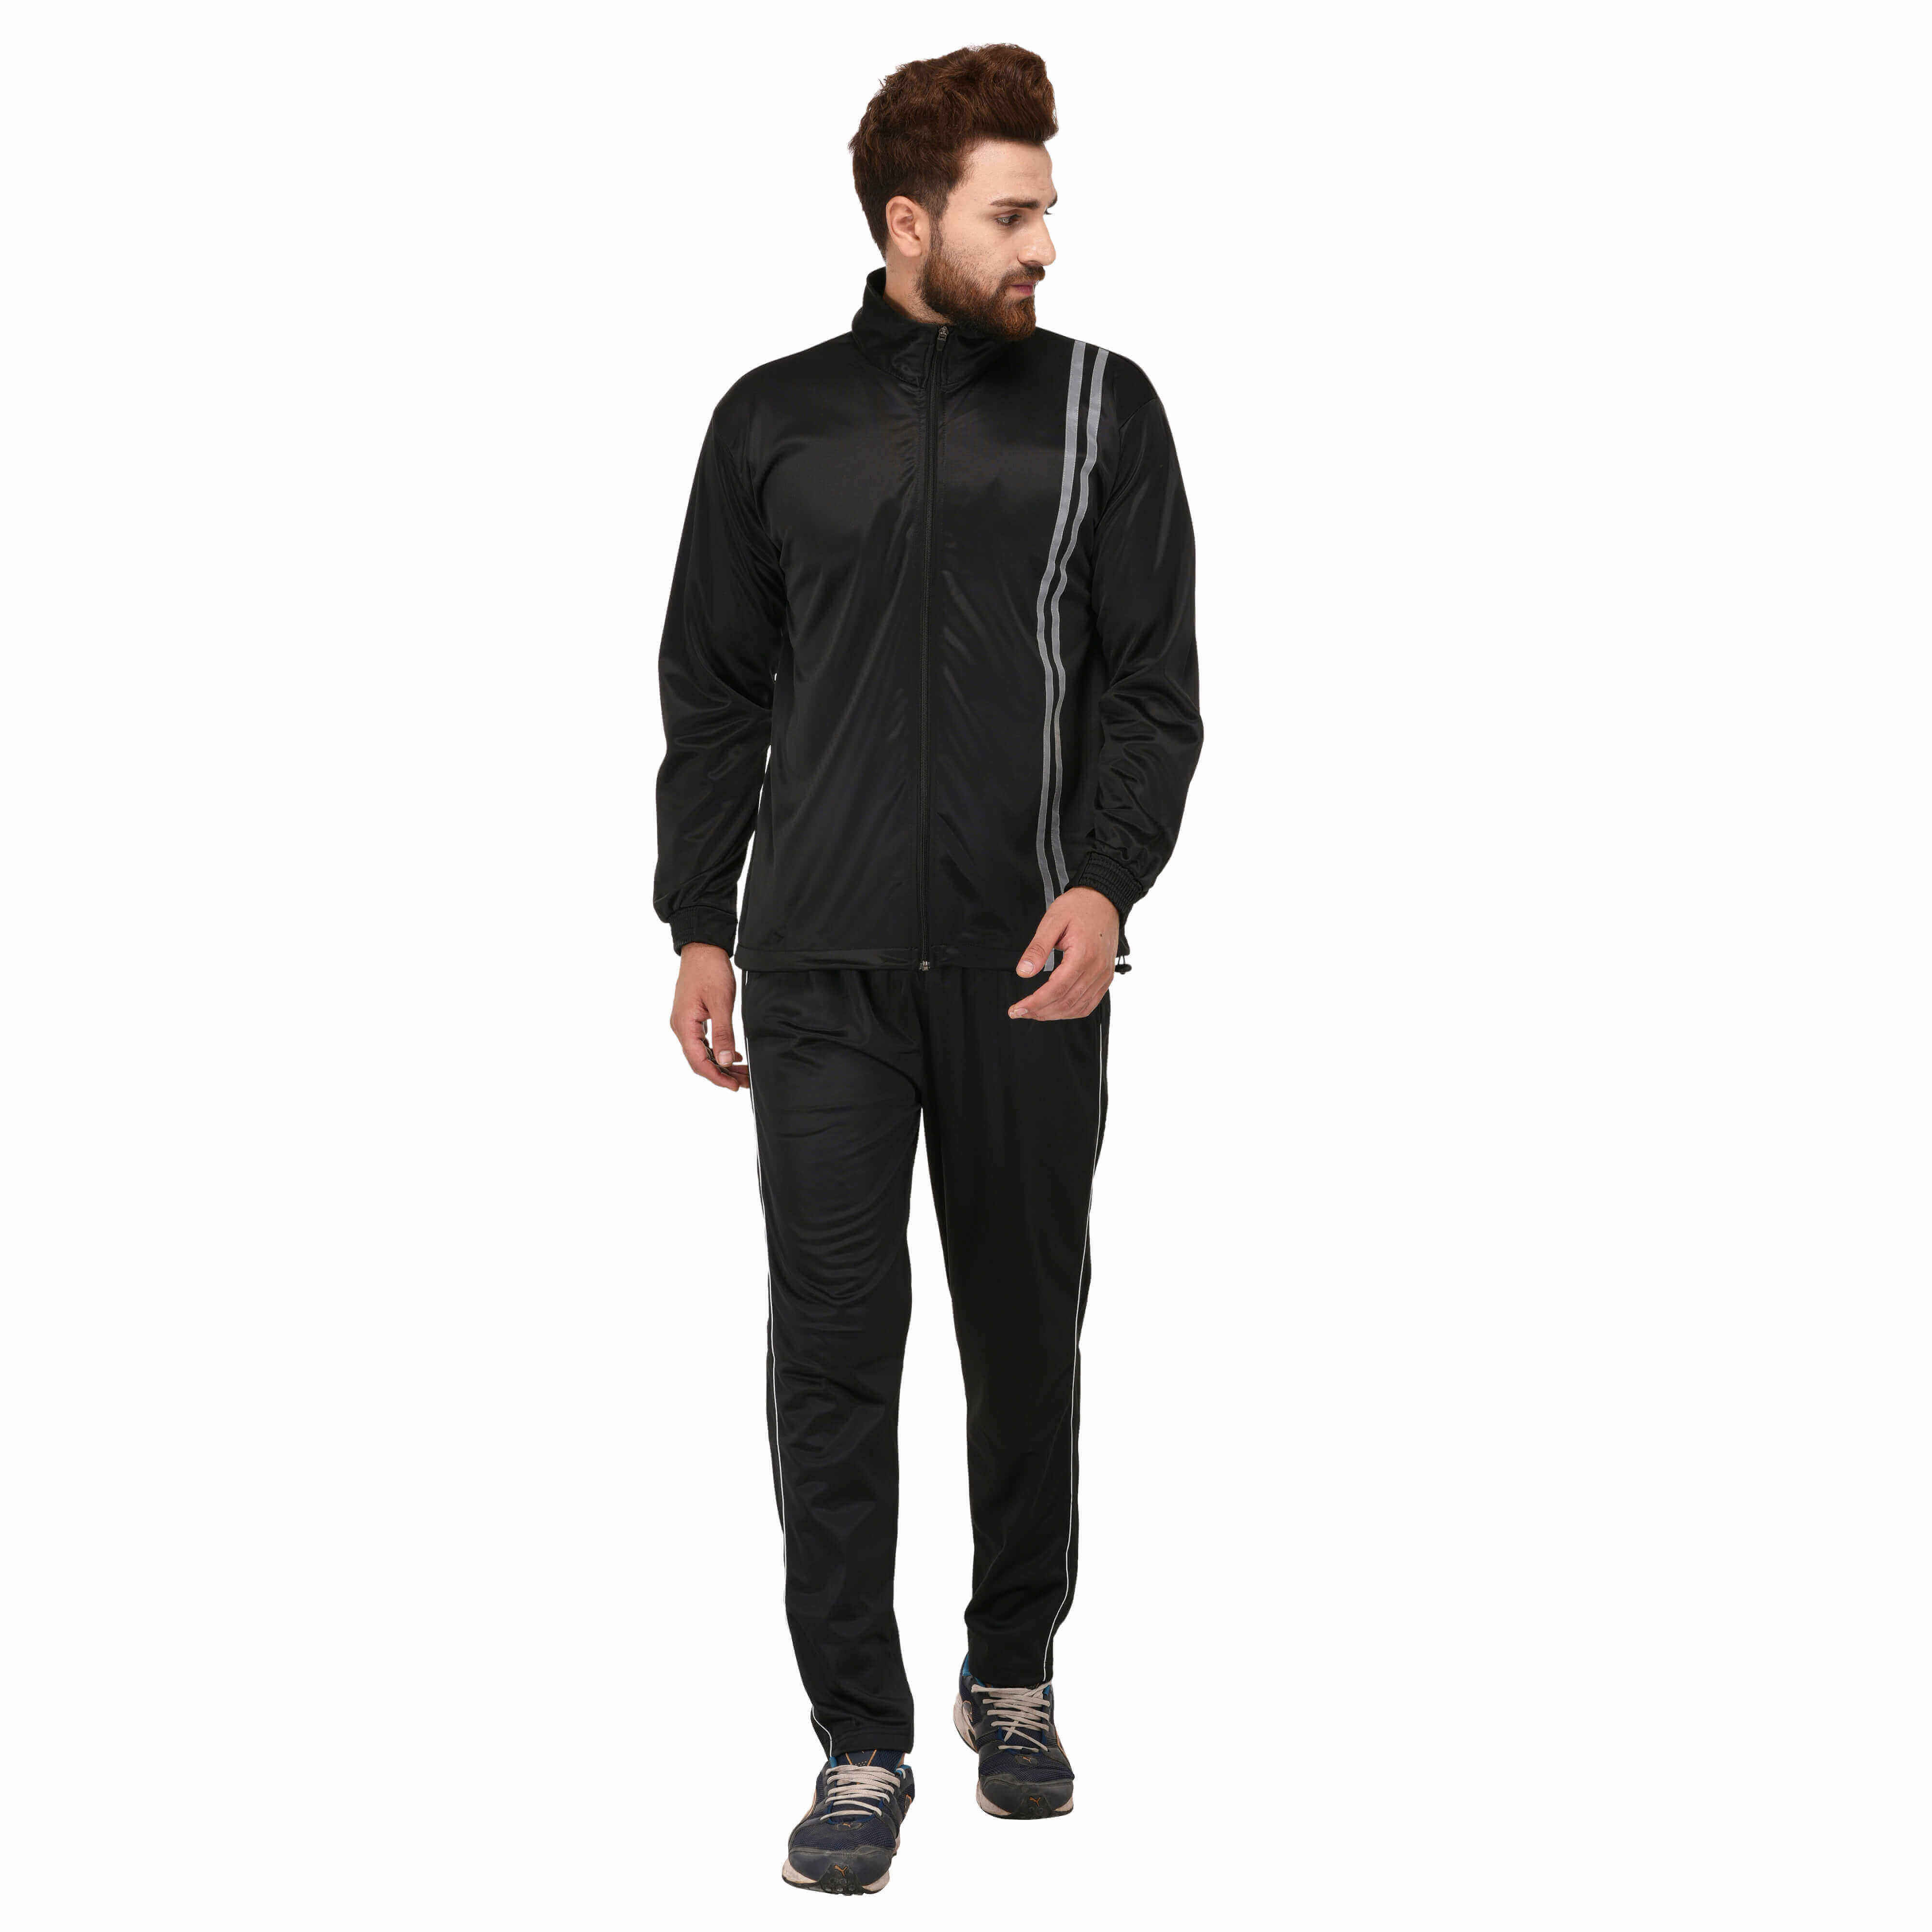 Mens Tracksuit Set Manufacturers in Saharanpur